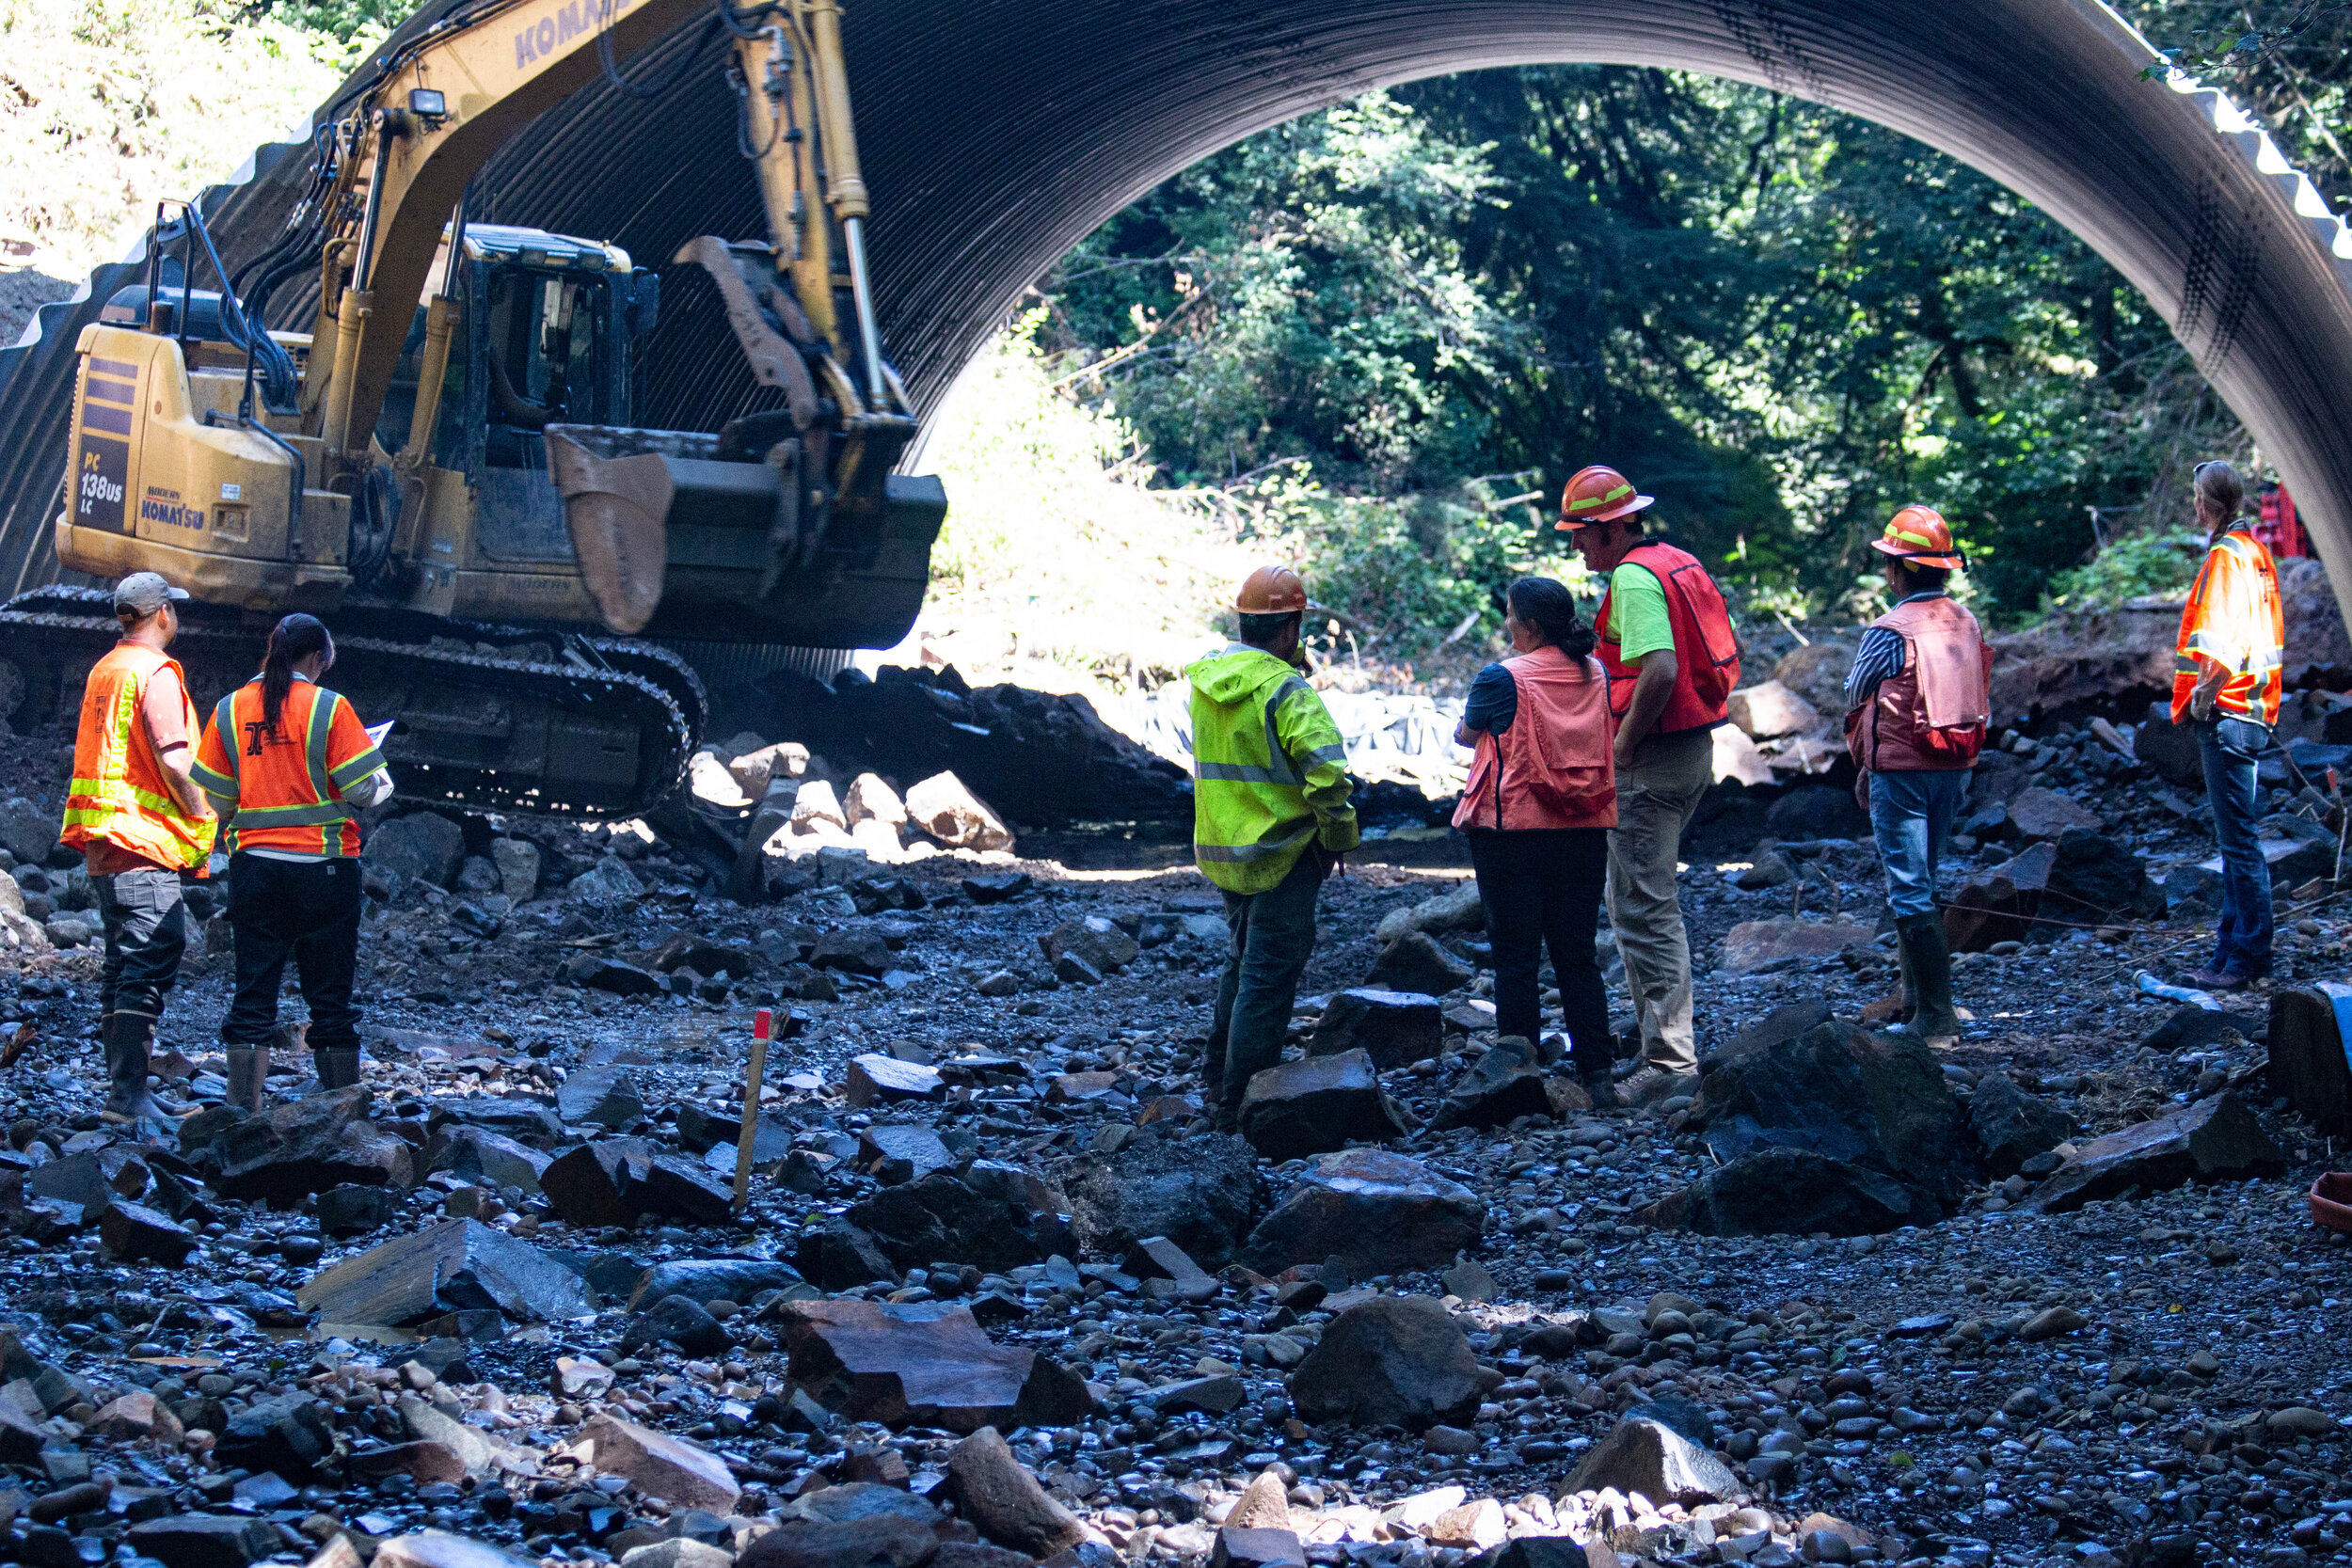 ODOT, MCWC, and USFS personnel view the placement of stream simulation under the new culvert to ensure they meet the engineered designs, meant to mimic a natural streambed.